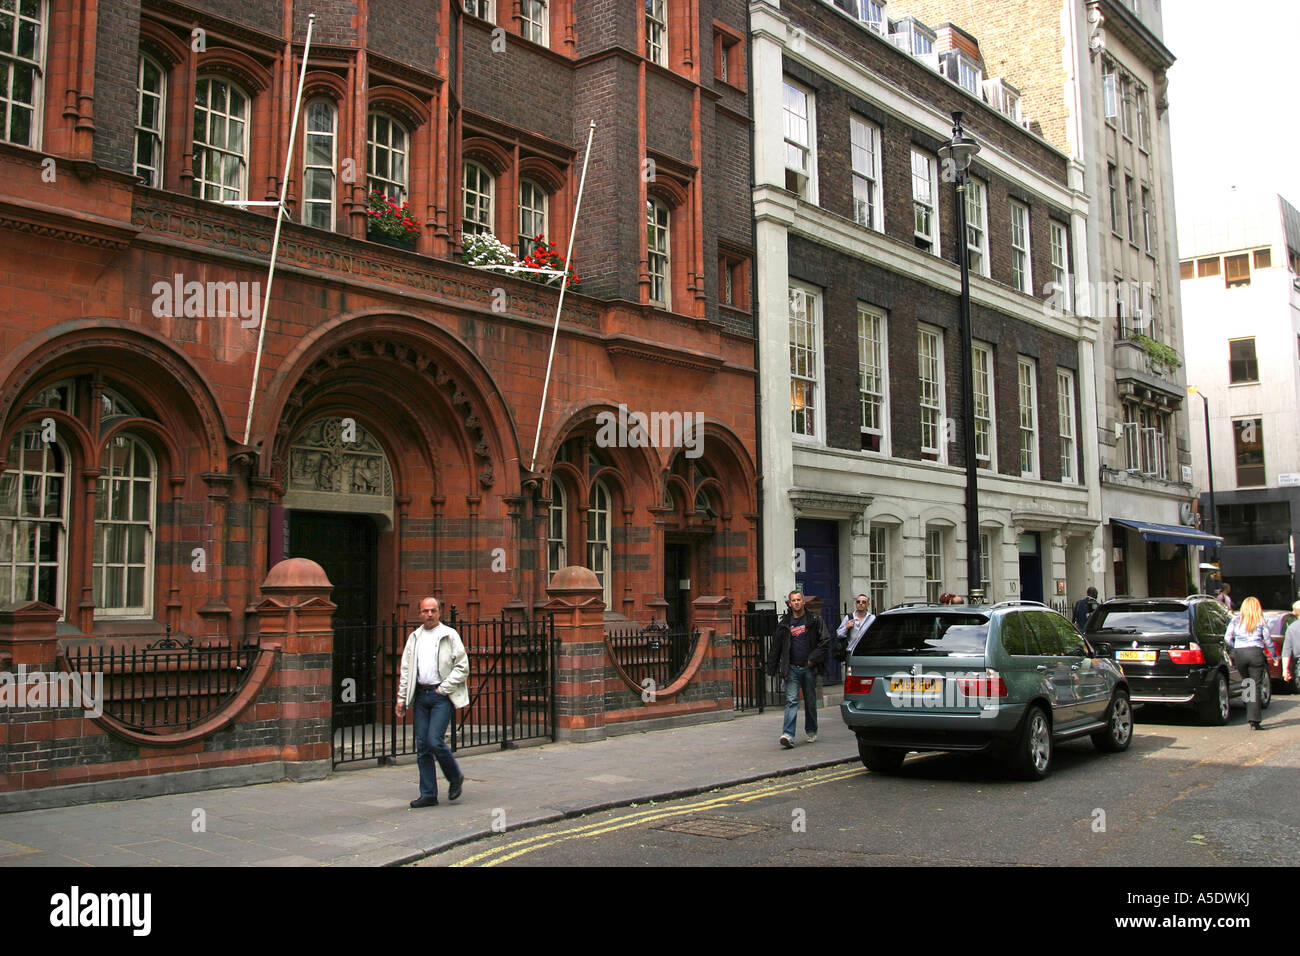 London Soho Square French Protestant Church and Number 15 original building - Stock Image